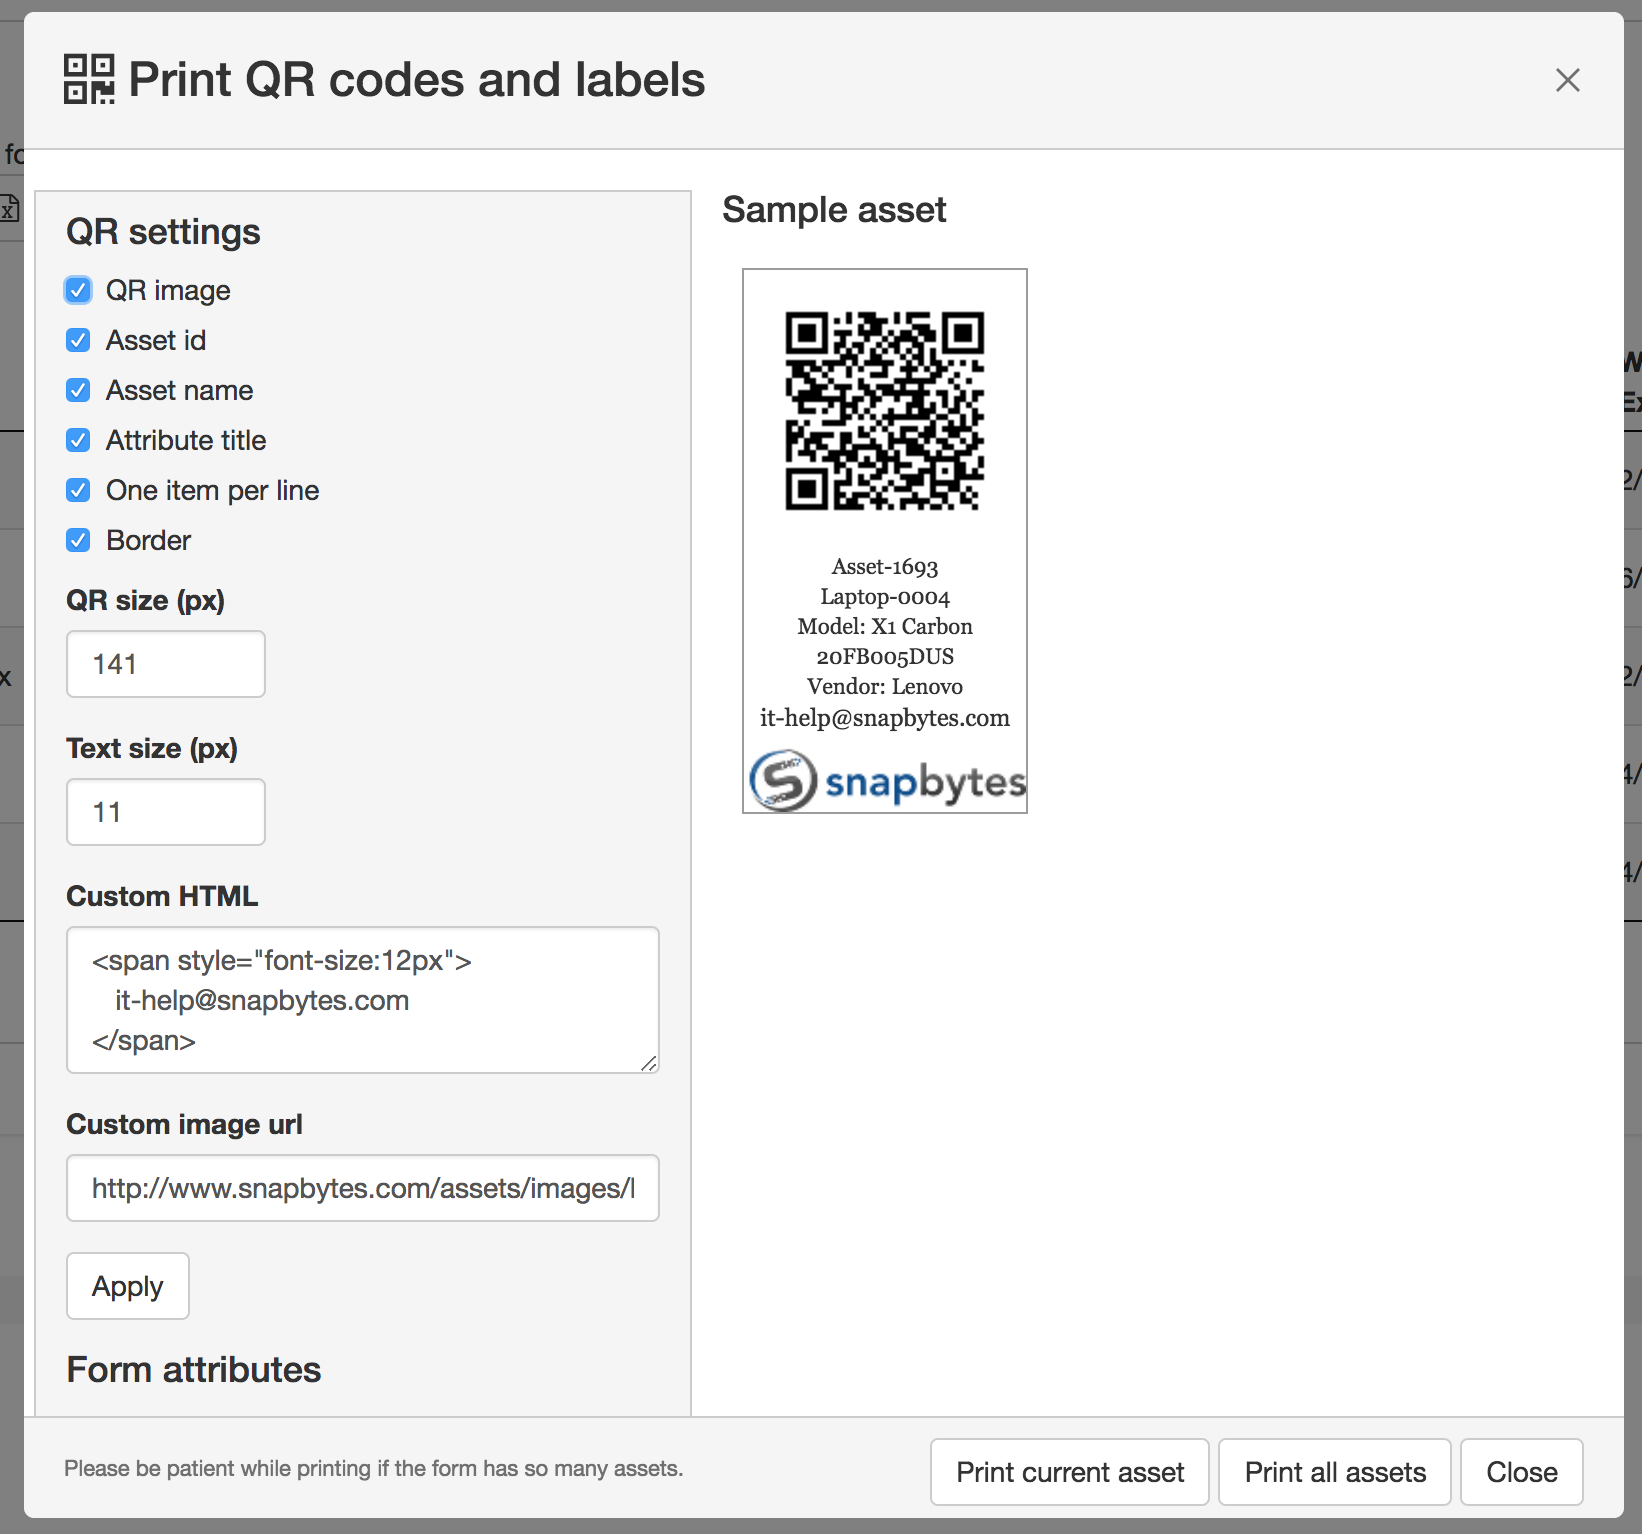 Printing Qr Codes And Labels Assets And Inventory